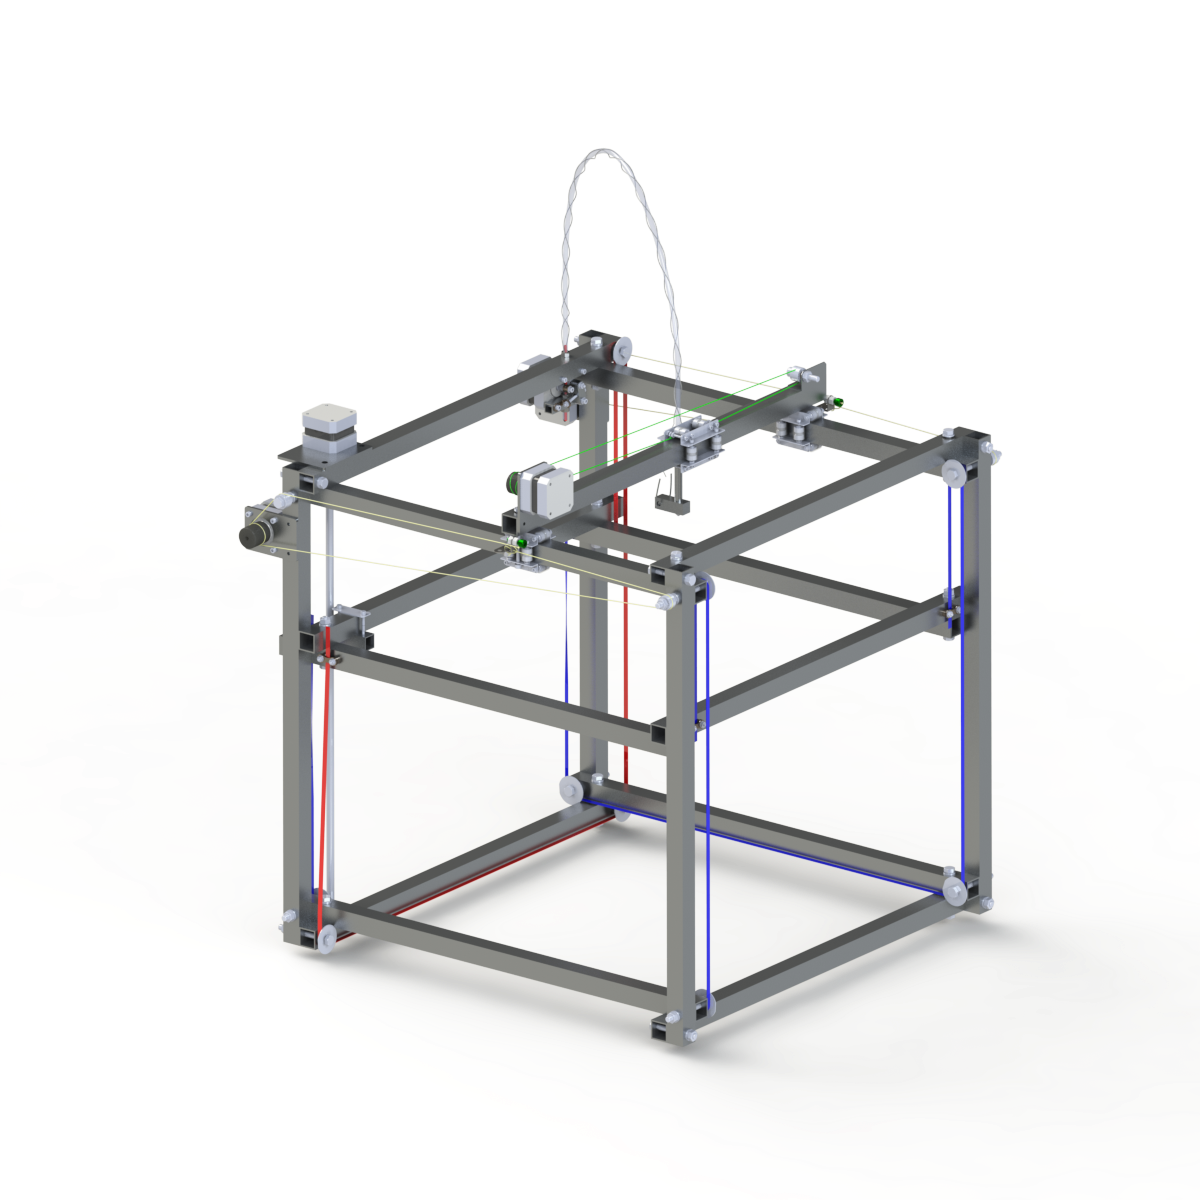 DIY 3D Printing: QuadStrap Low Cost 3d Printer With Large